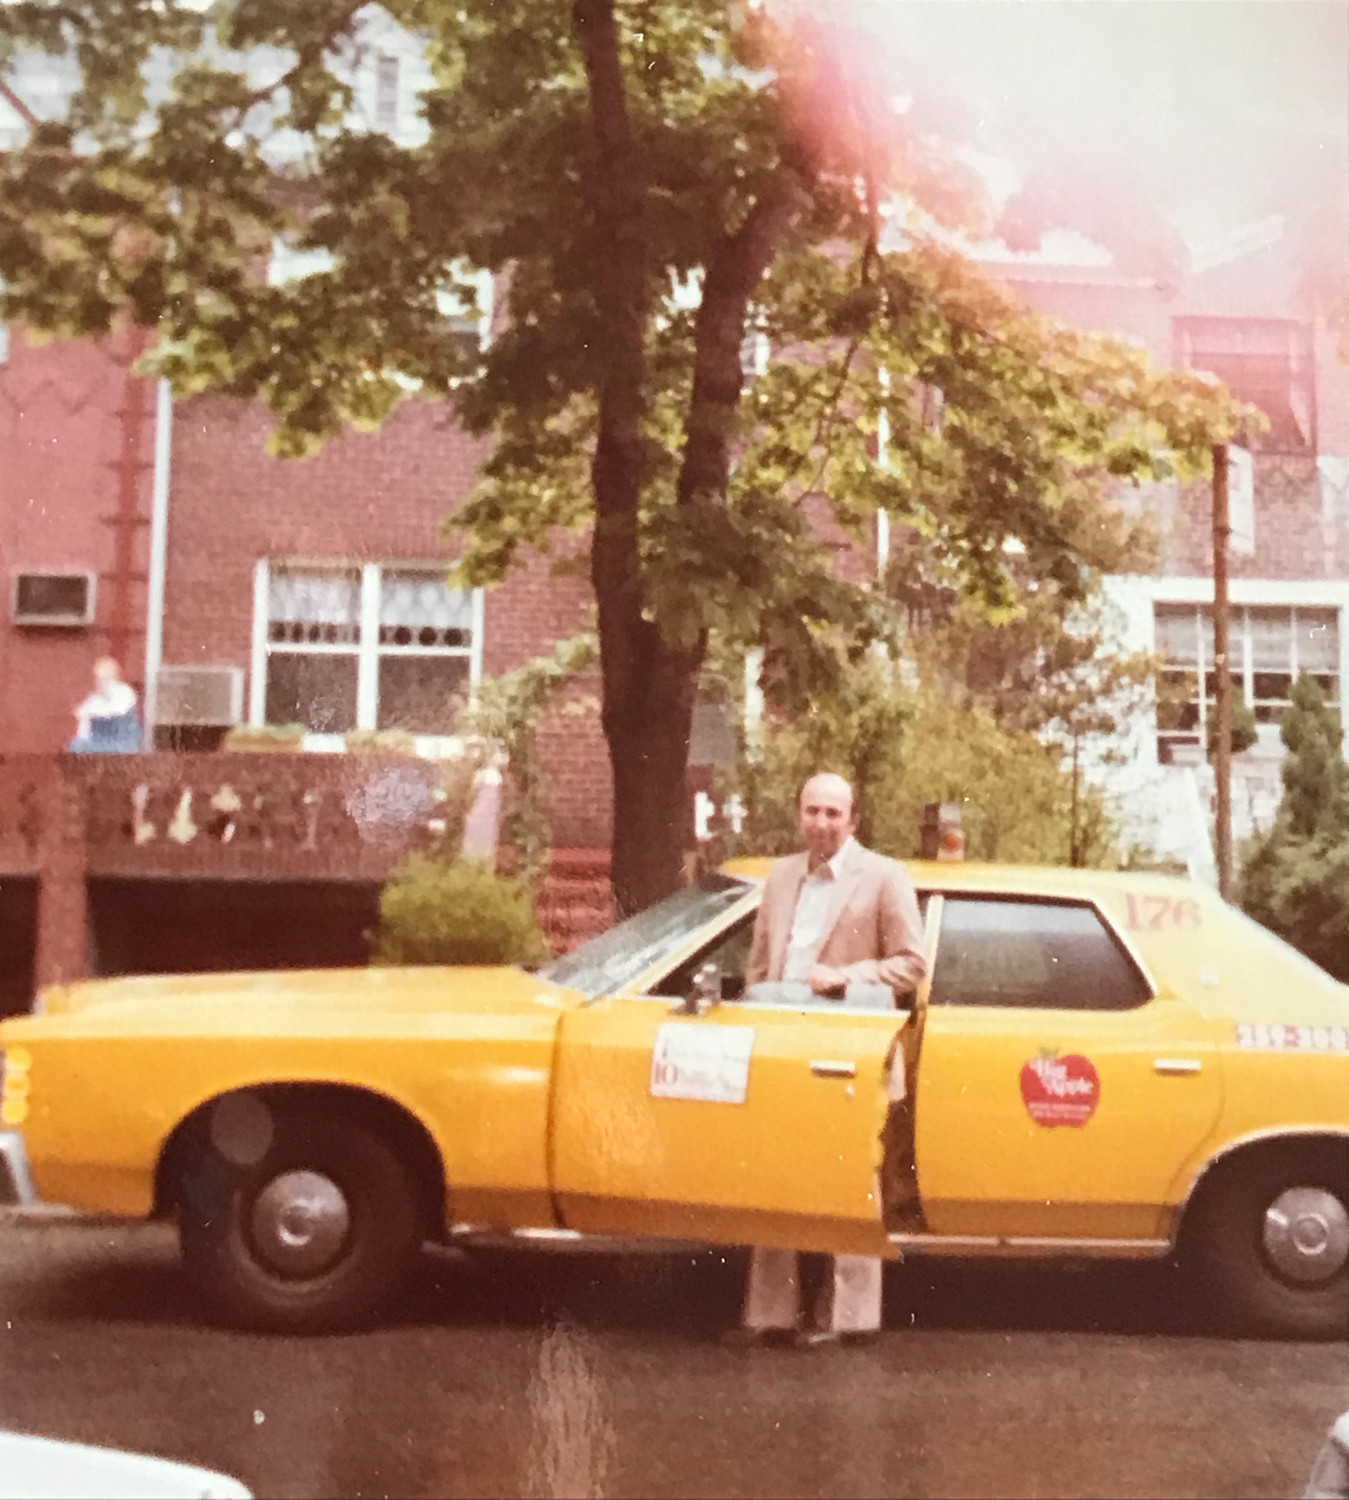 In Queens, Tibor Horovitz began a taxi service. He was well liked, and gave rides to celebrities including Muhammad Ali, actor and singer Eddie Fisher and Jacqueline Kennedy Onassis.